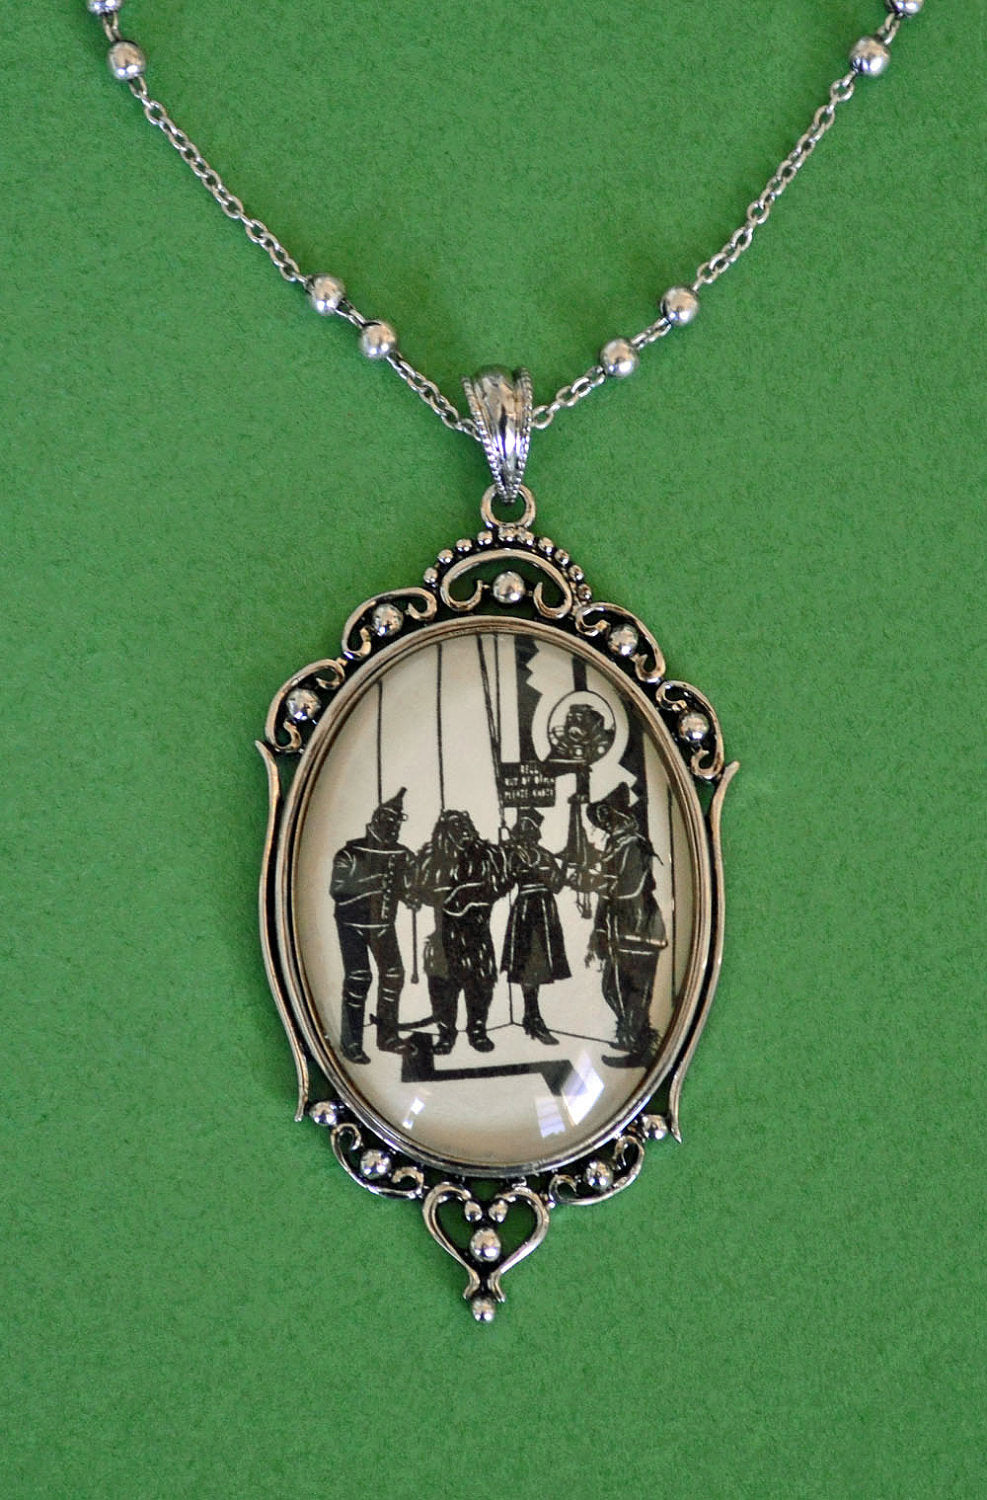 The WIZARD of OZ Necklace, pendant on chain - Silhouette Jewelry